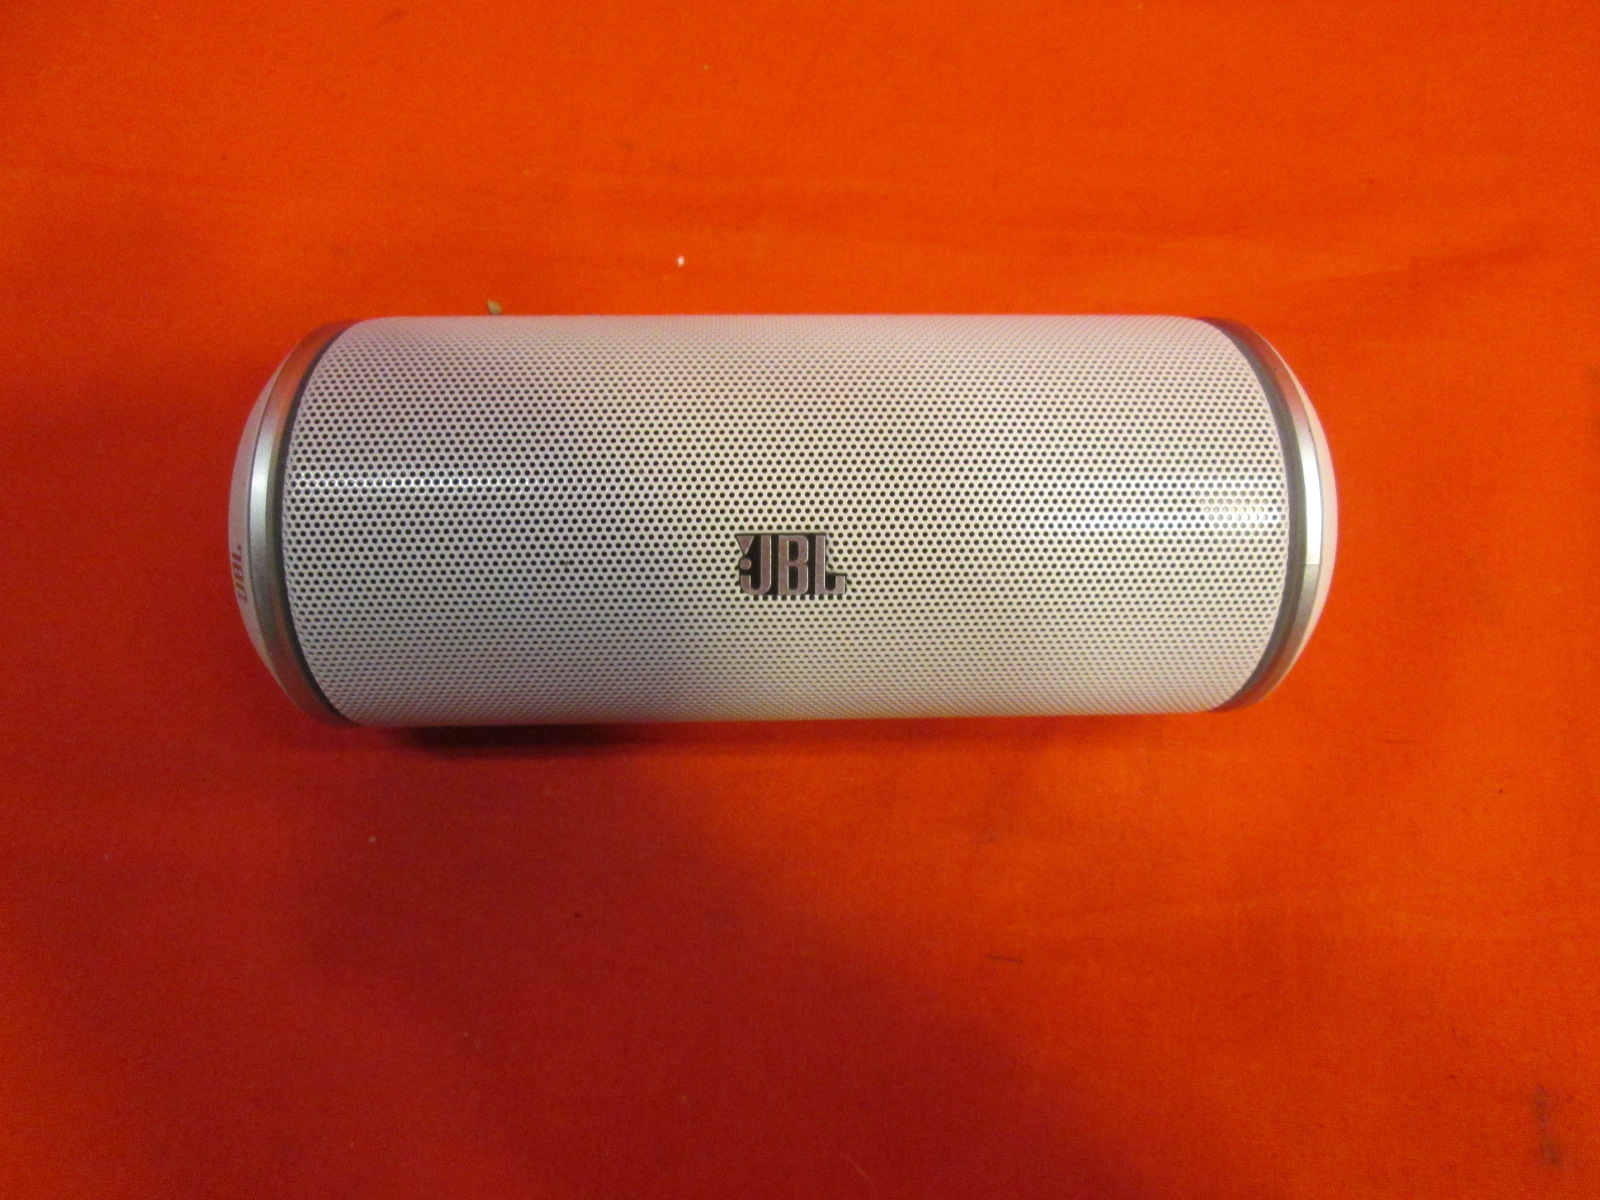 how to connect jbl flip to phone